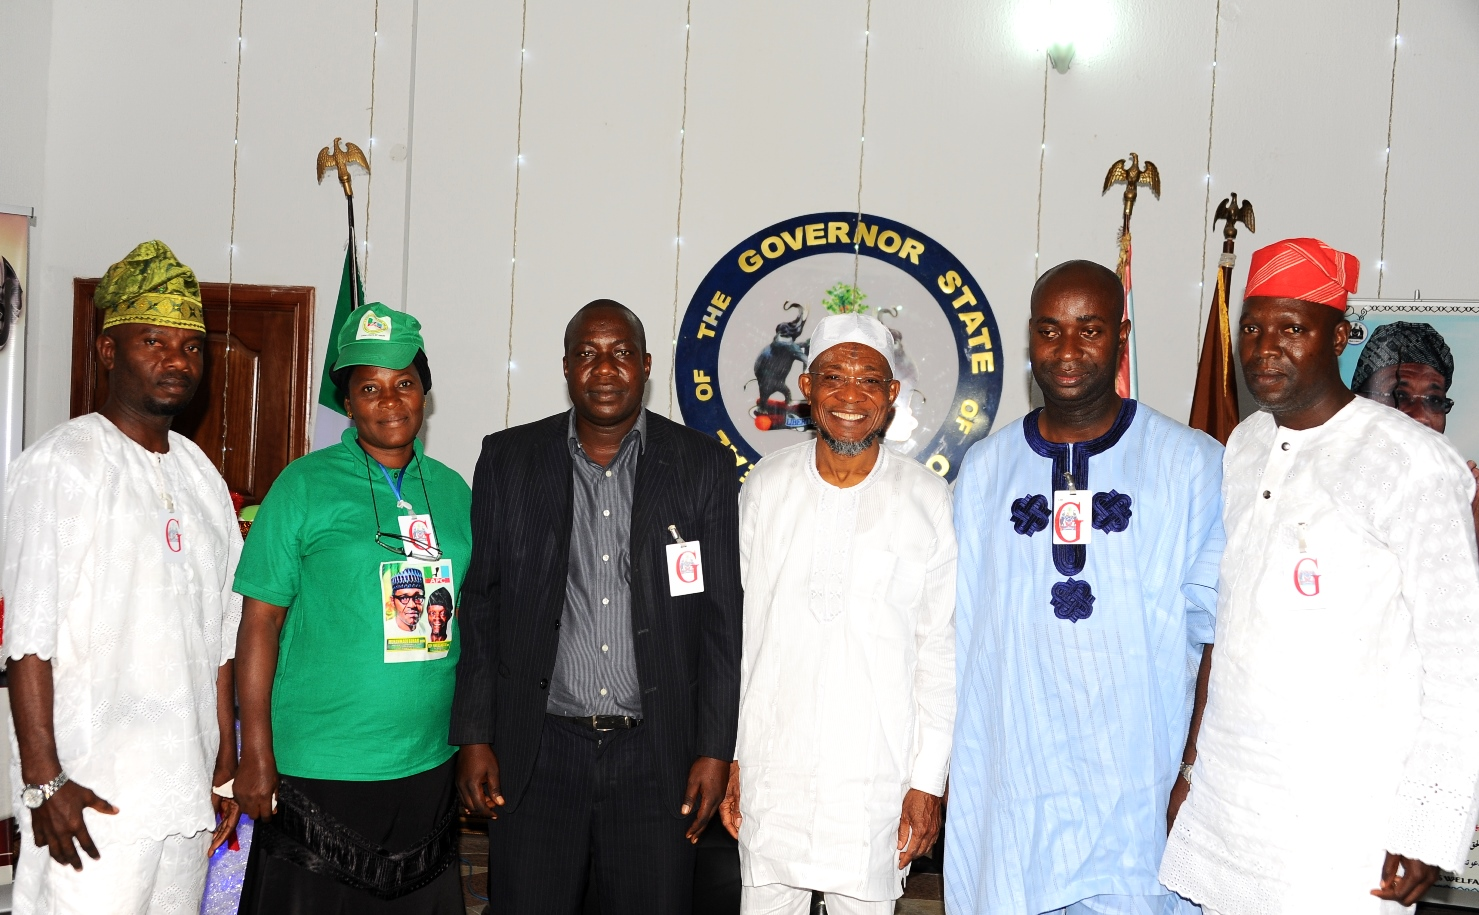 Governor State of Osun, Ogbeni Rauf Aregbesola (3rd right); National Youth Leader, Coalition of APC Supporters Group Abuja, Comrade Mojeed Yaya (3rd left); Deputy National Chairman South Coalition of the group, Barrister Kunle Ehinlanwo (2nd right); State Co-Ordinator, Hon Shekete Adamson (right); State Welfare Officer, Alhaja Abass Fatima (2nd left) and a member of the Group Prince Ayatuga Alaba, during the Presentation of Educational Materials to thr Governor in Appreciation and Support of Government Educational Policy by Coalition of APC Supporters Group Abuja, at The Government House Osogbo. On Thursday 31-12-2015.